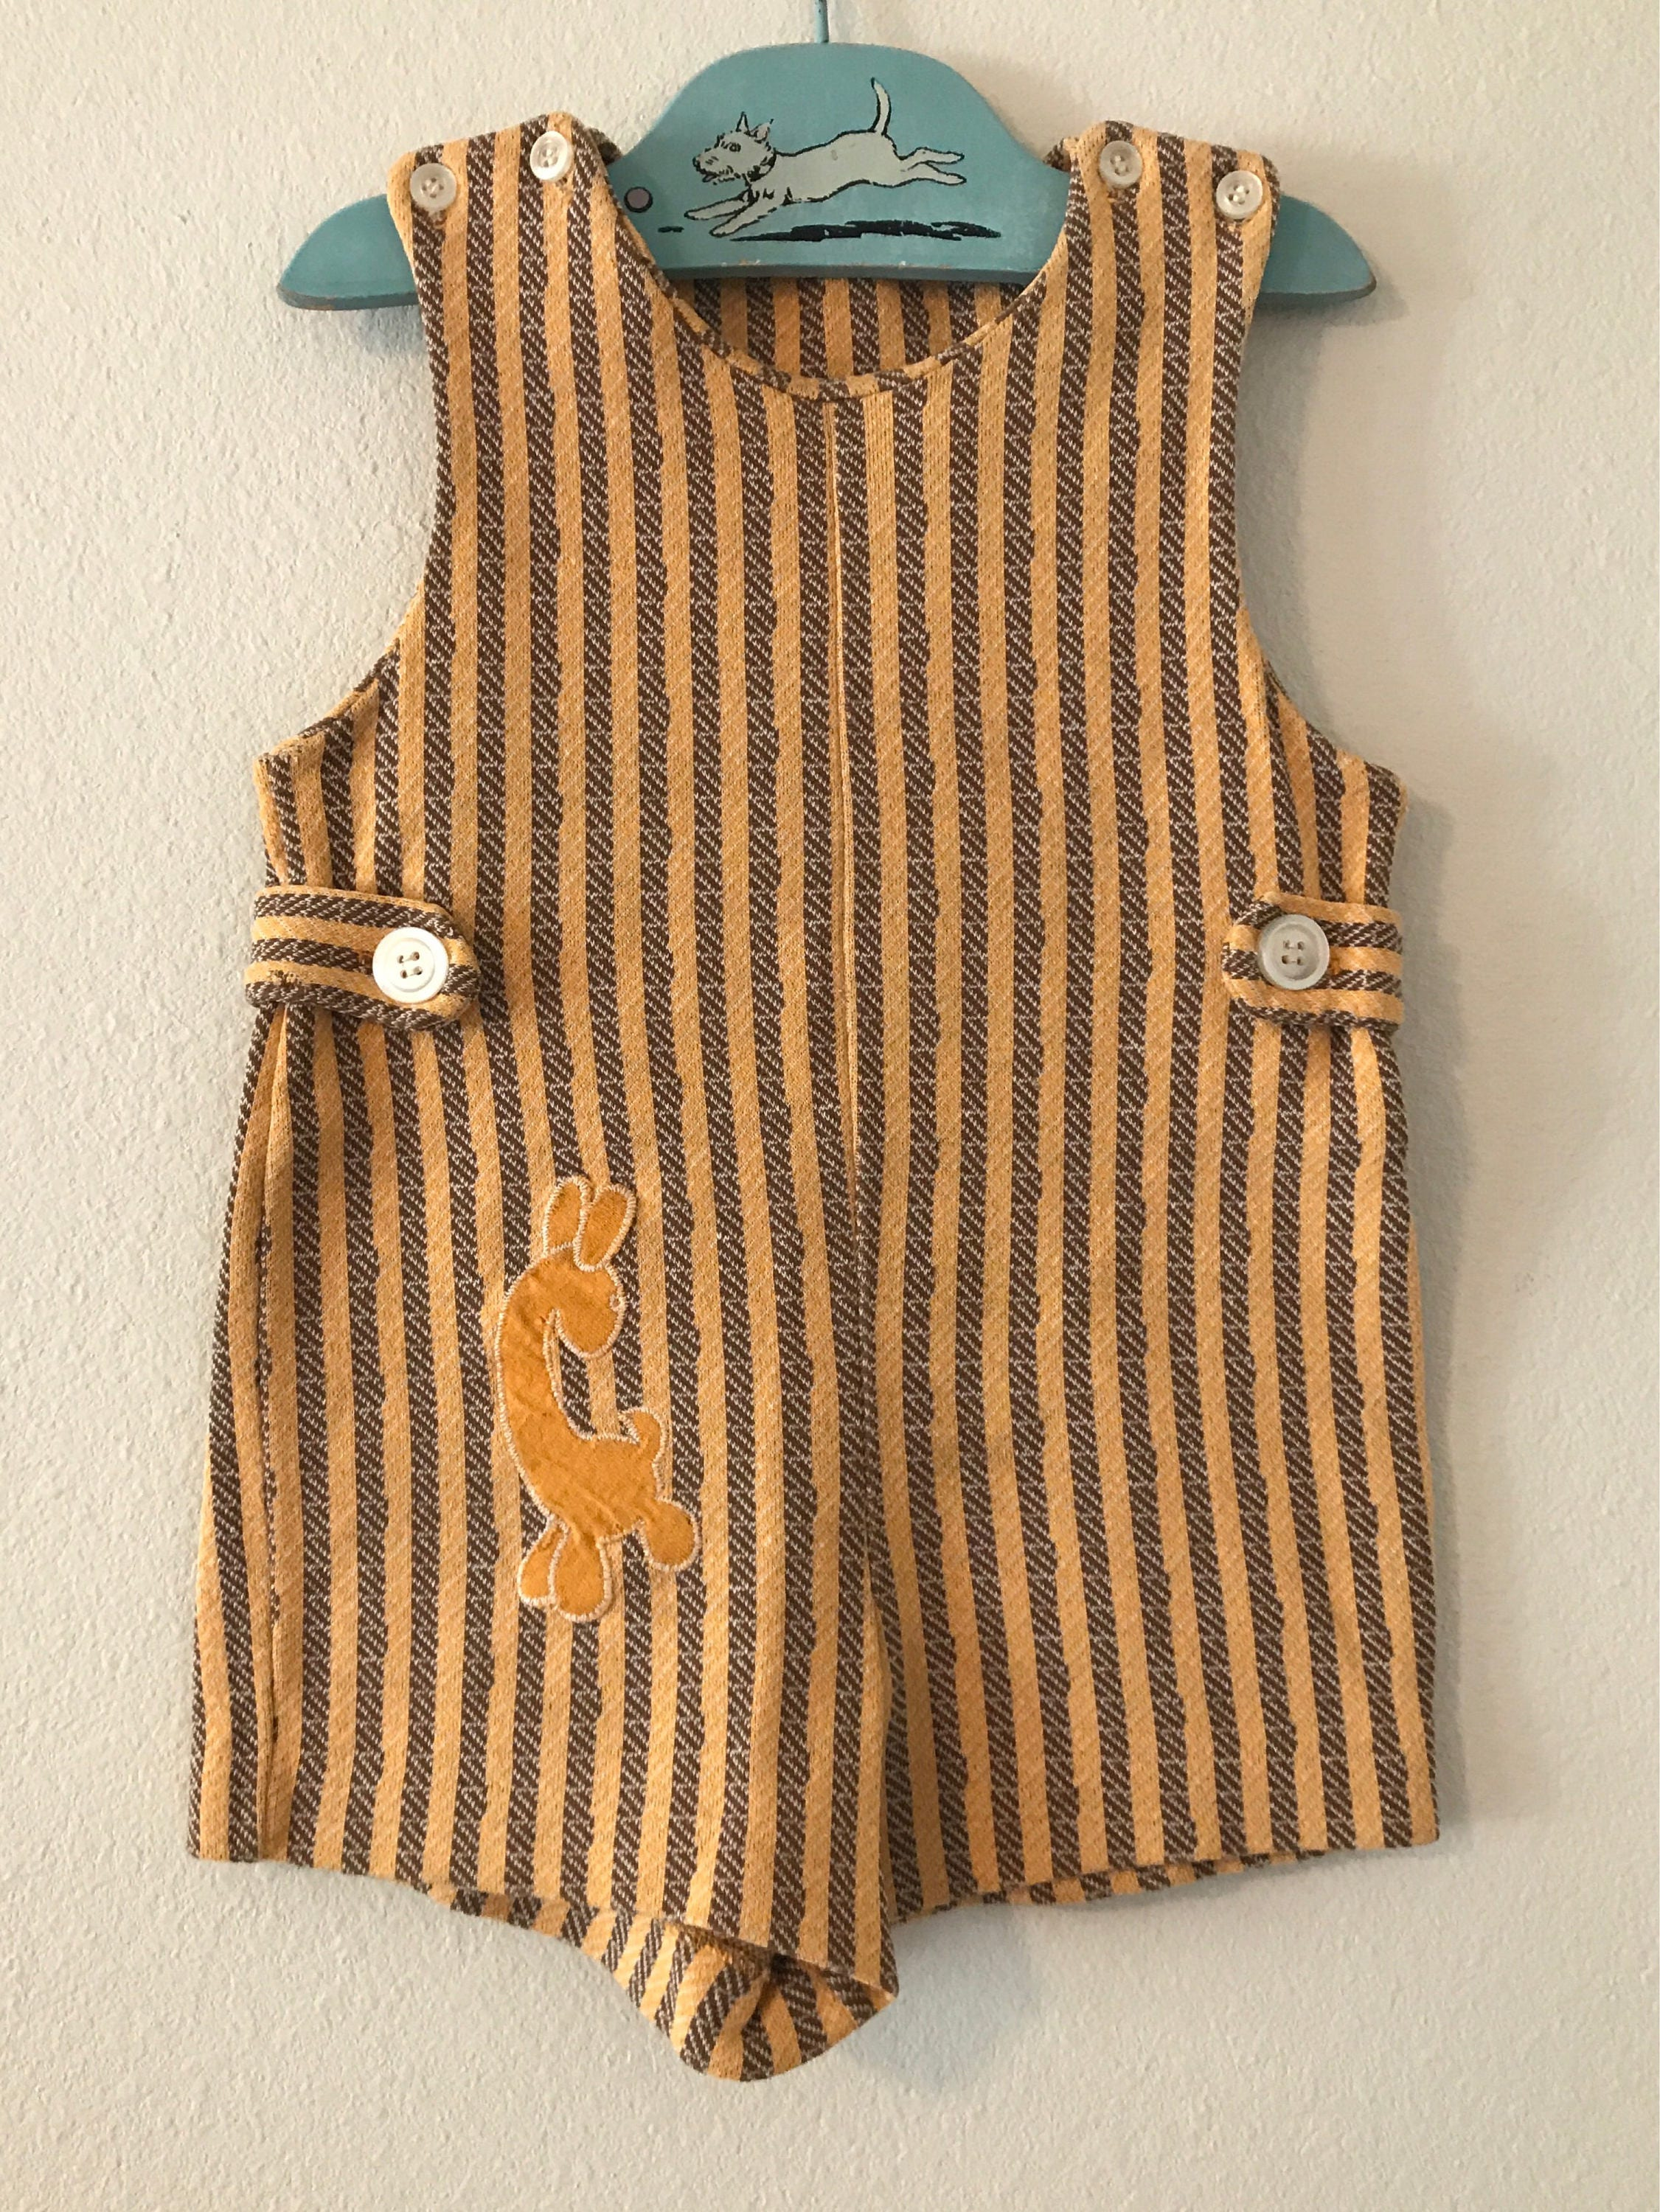 Vintage Mustard Yellow Baby Romper Vintage Yellow and Brown Striped